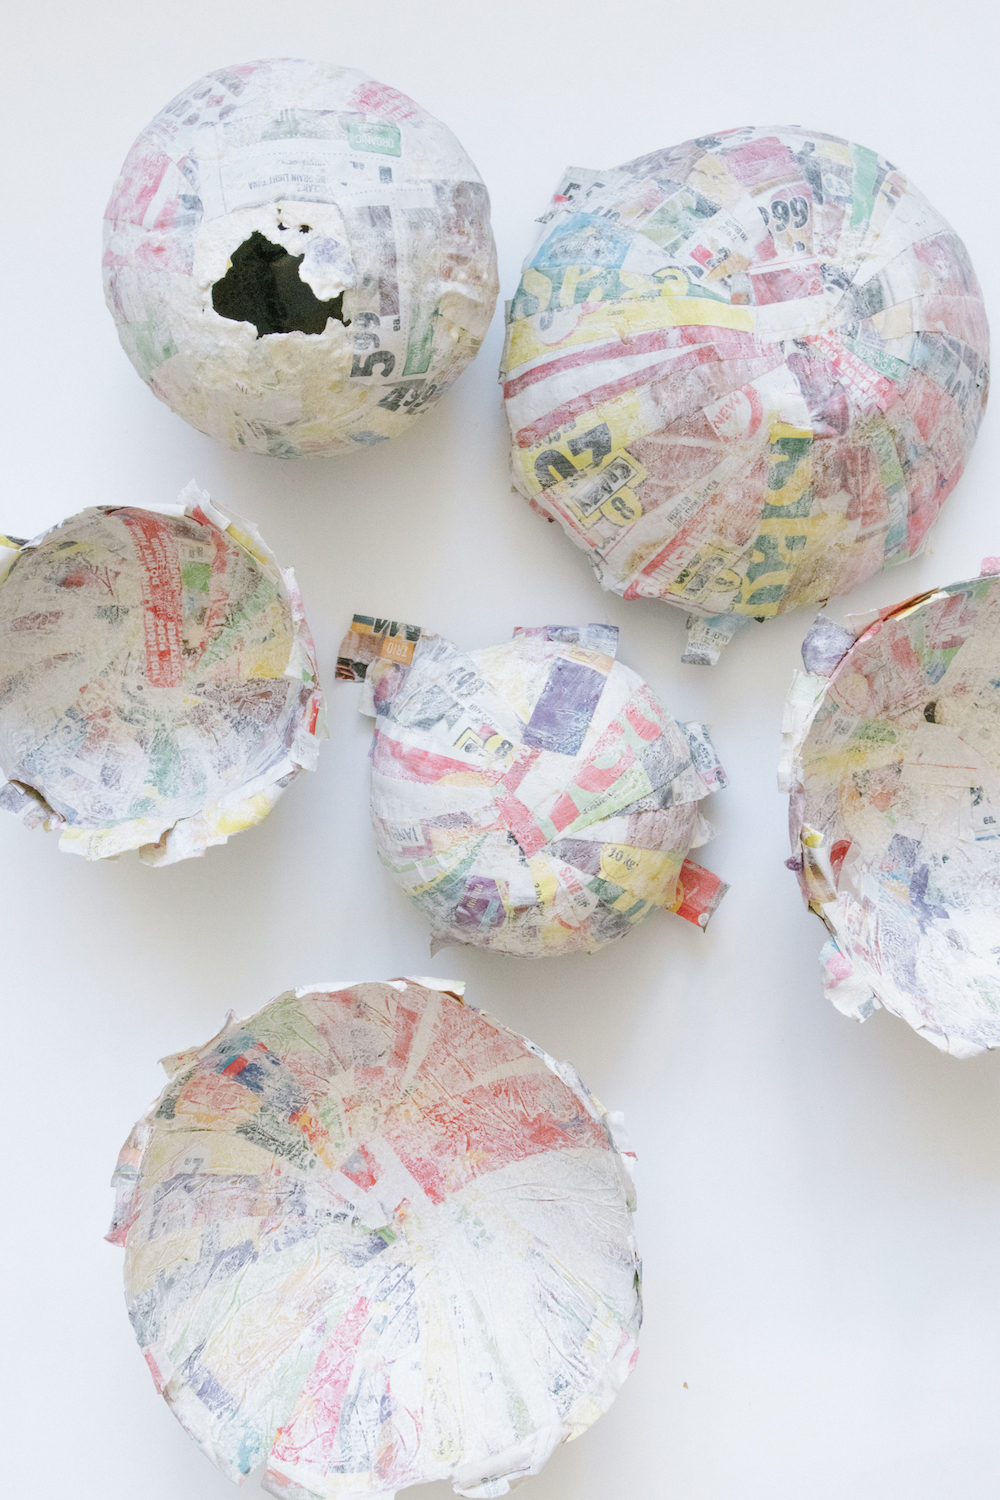 Paper mache using bowls and balloons